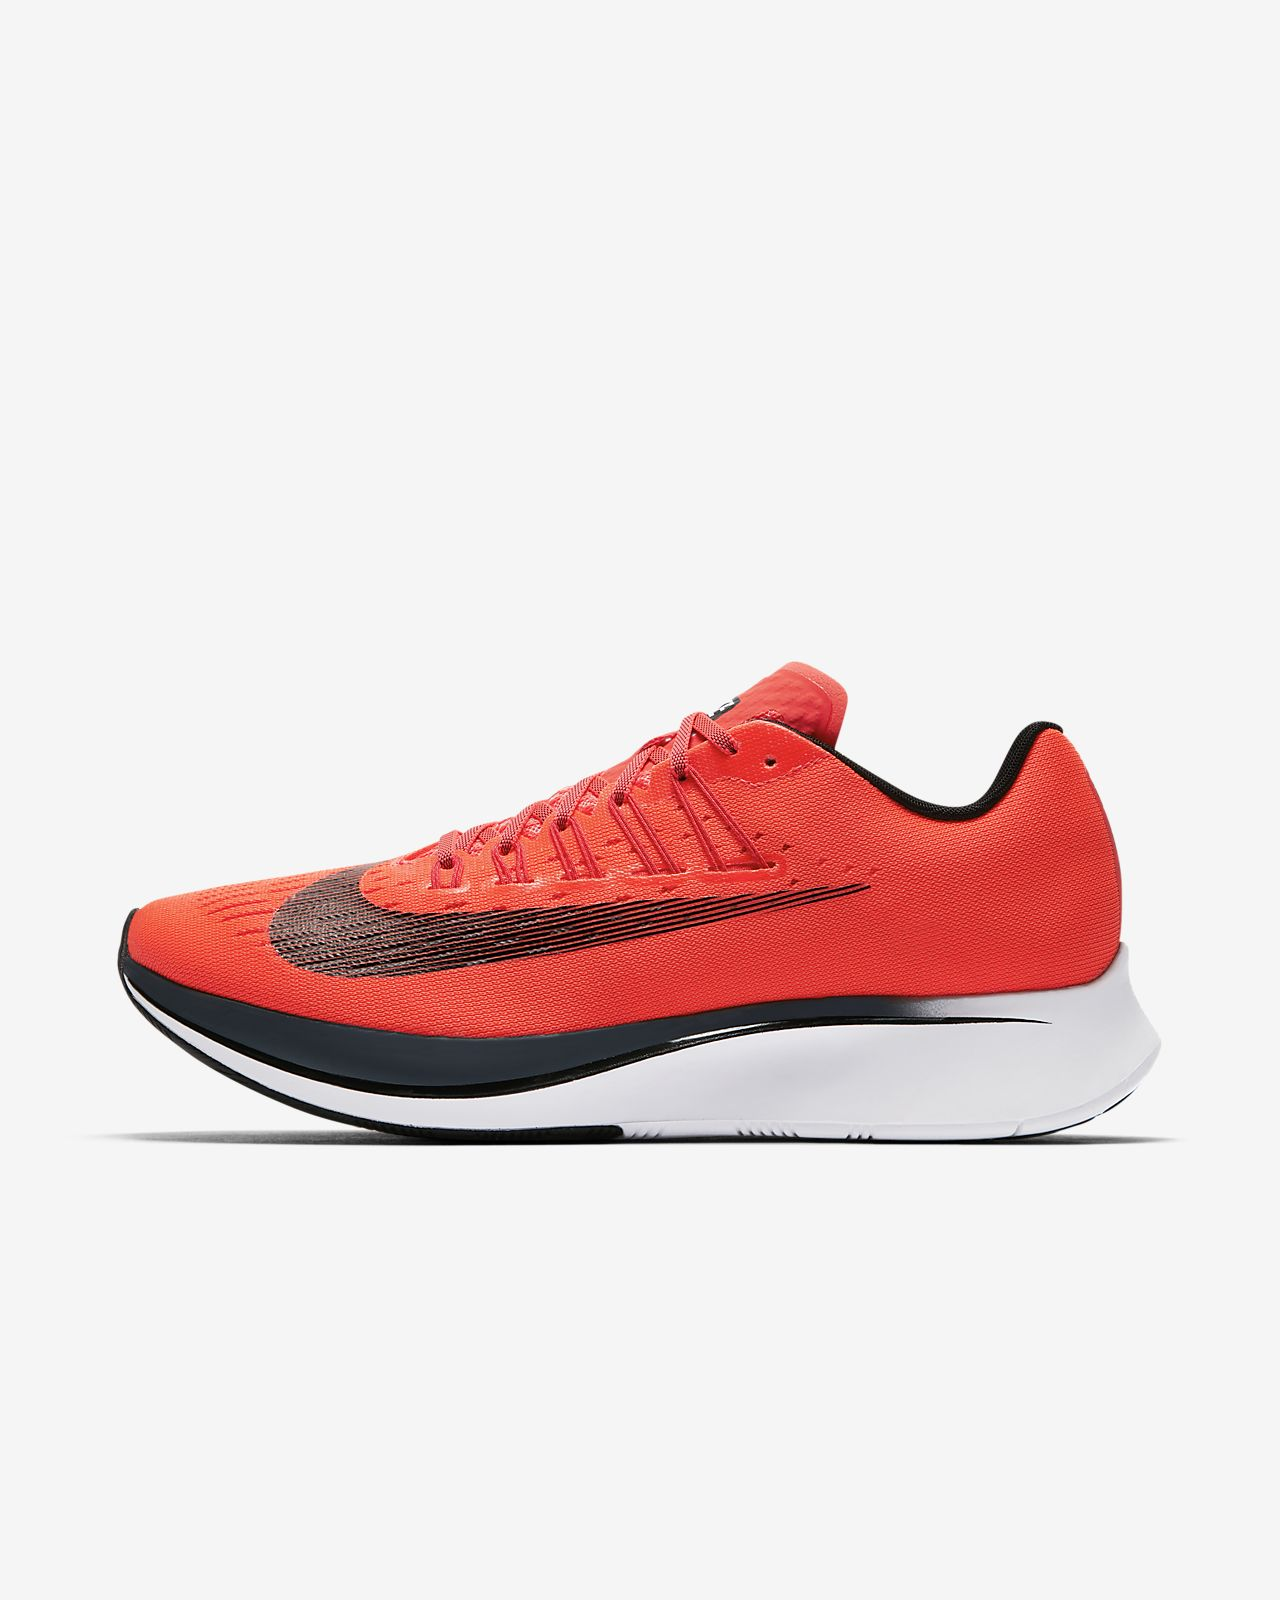 5806fae67b8a Nike Zoom Fly Men s Running Shoe. Nike.com AU